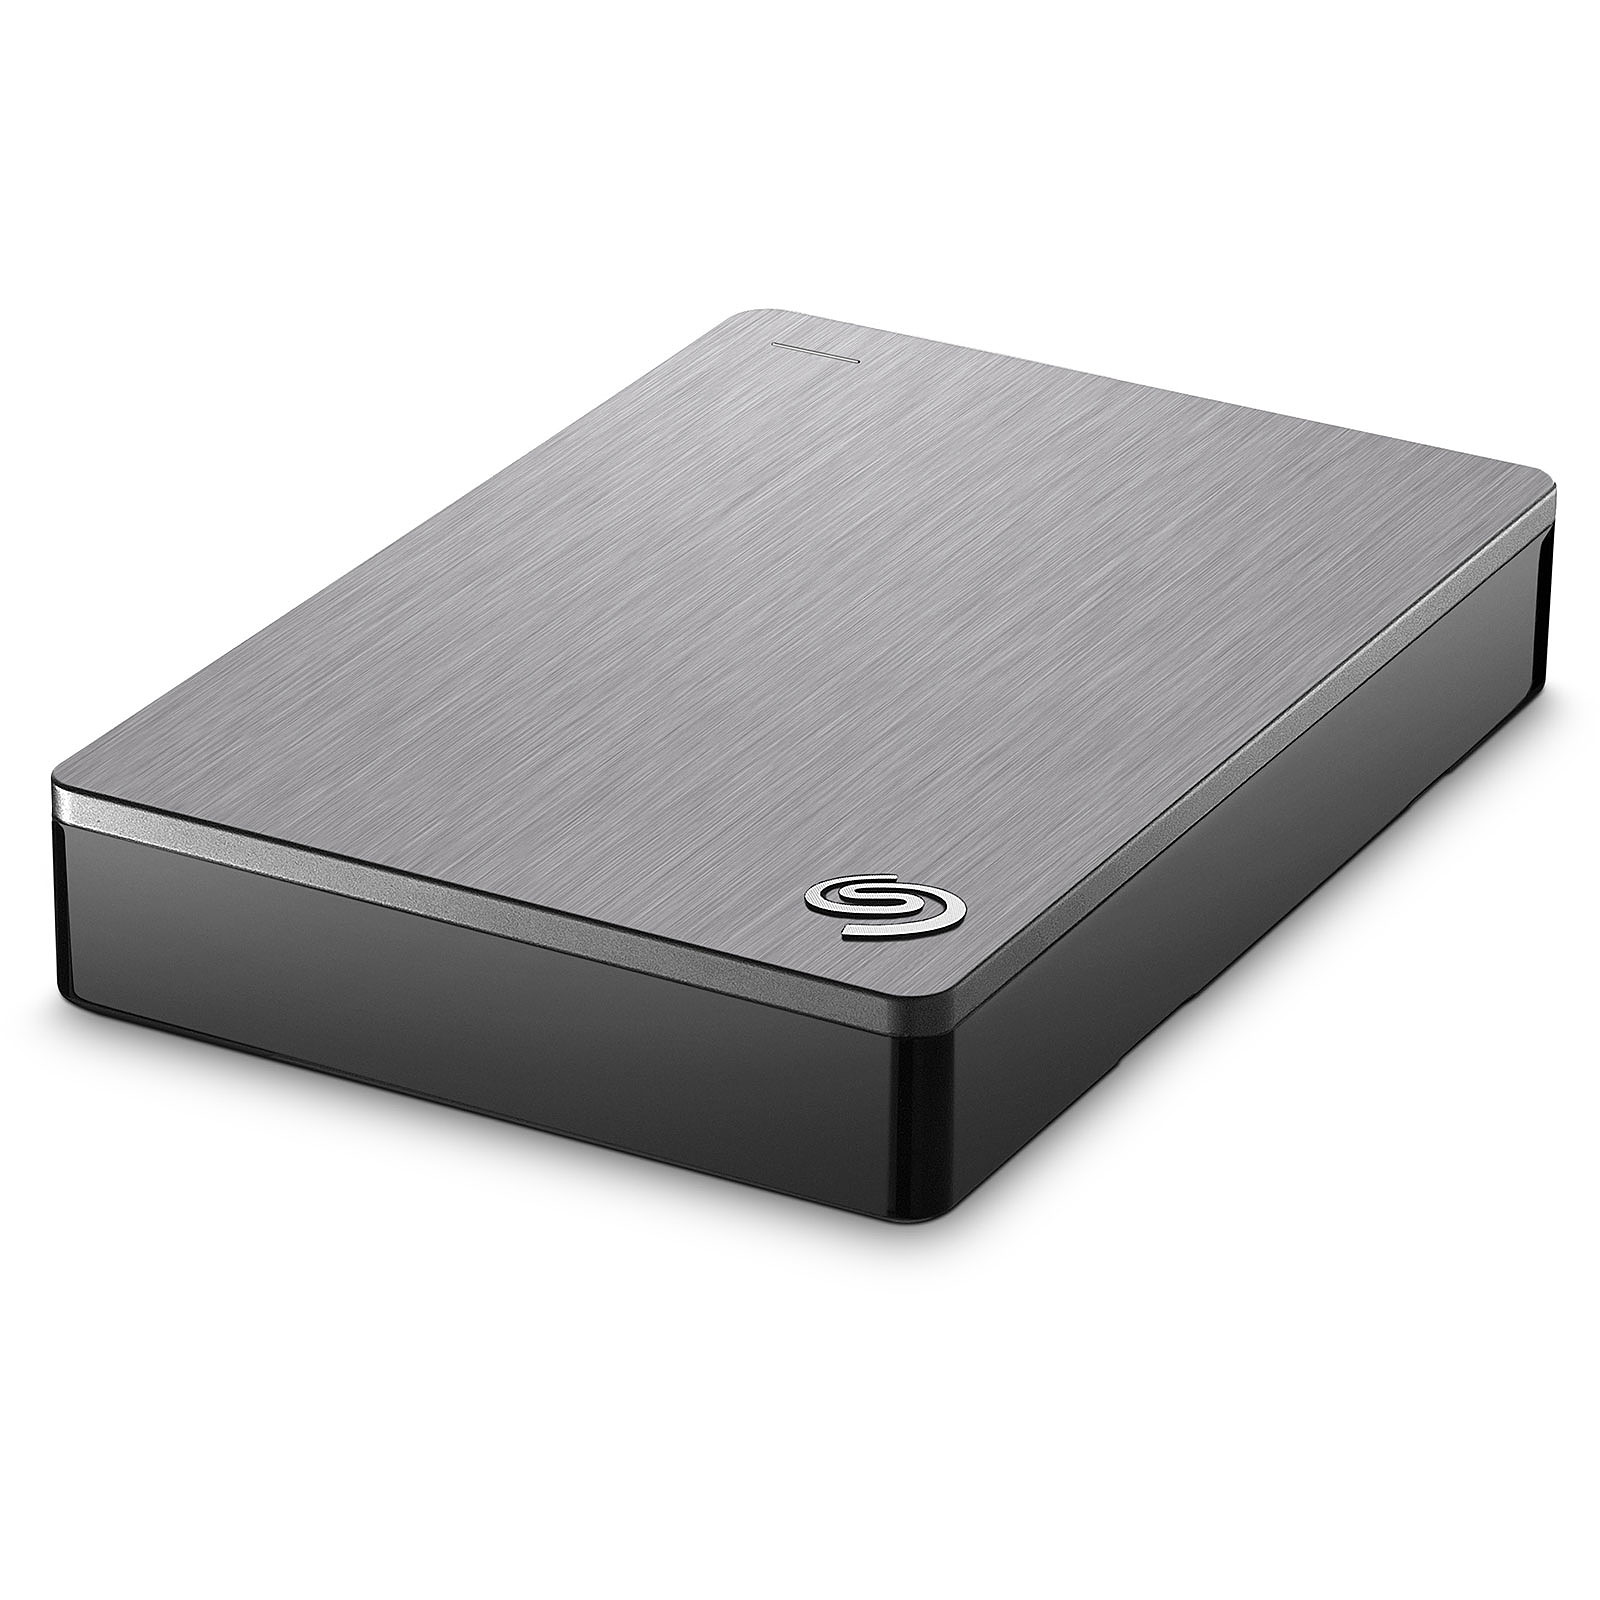 Seagate Backup Plus 5 To Gris (USB 3.0)